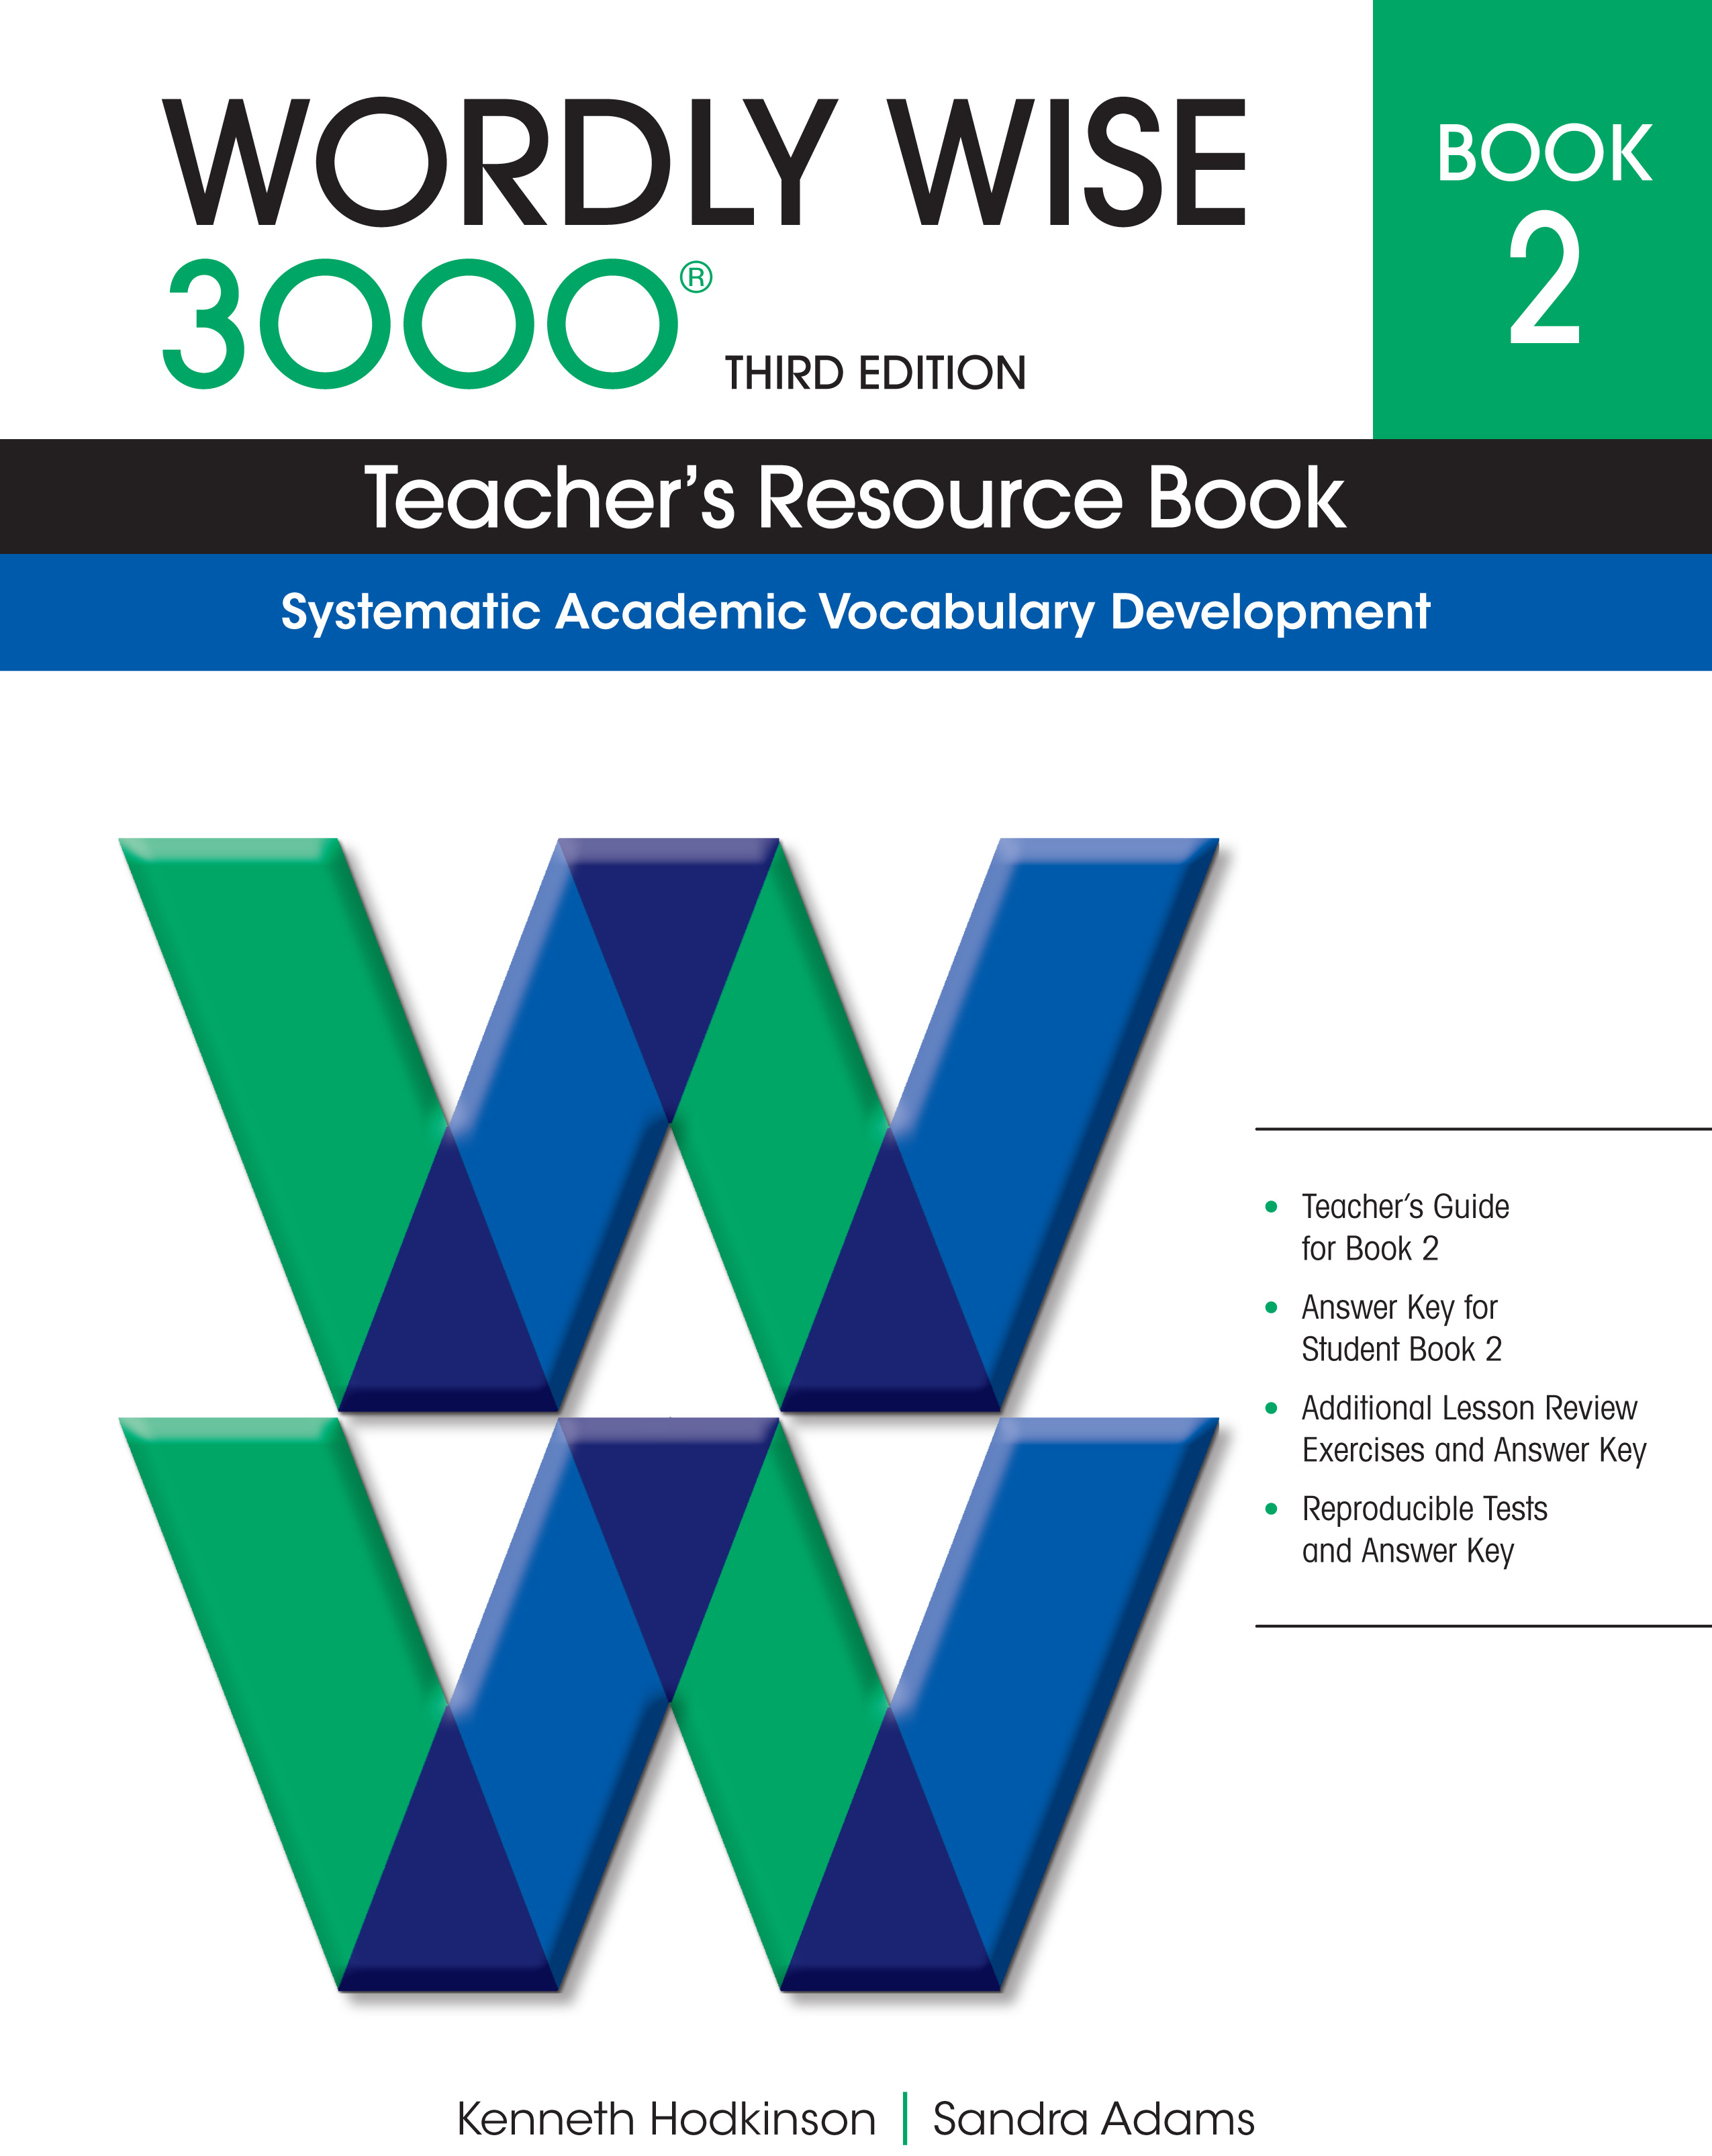 Wordly Wise 3000® 3rd Edition Teacher's Resource Book 2